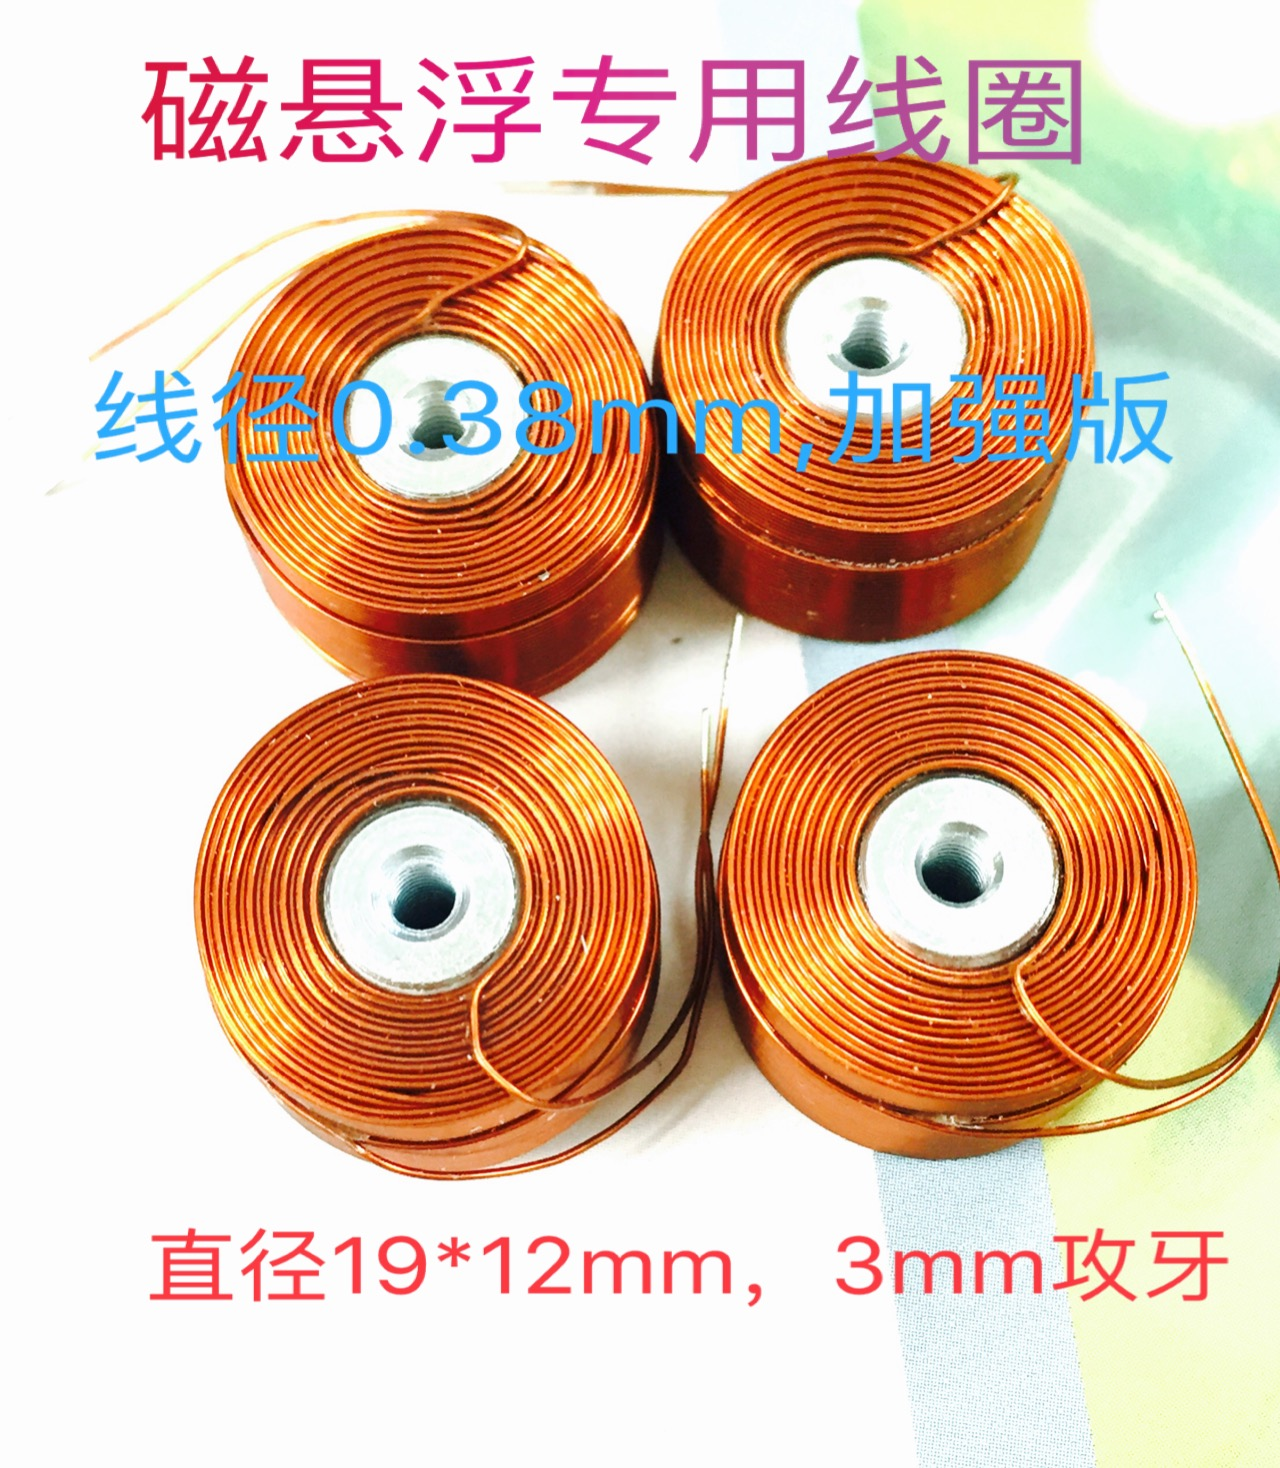 Magnetic suspension coil with iron core, 19*12MM wire diameter, 0.38MM copper wire pure copper magnetic suspension coil with 3mm screw hole